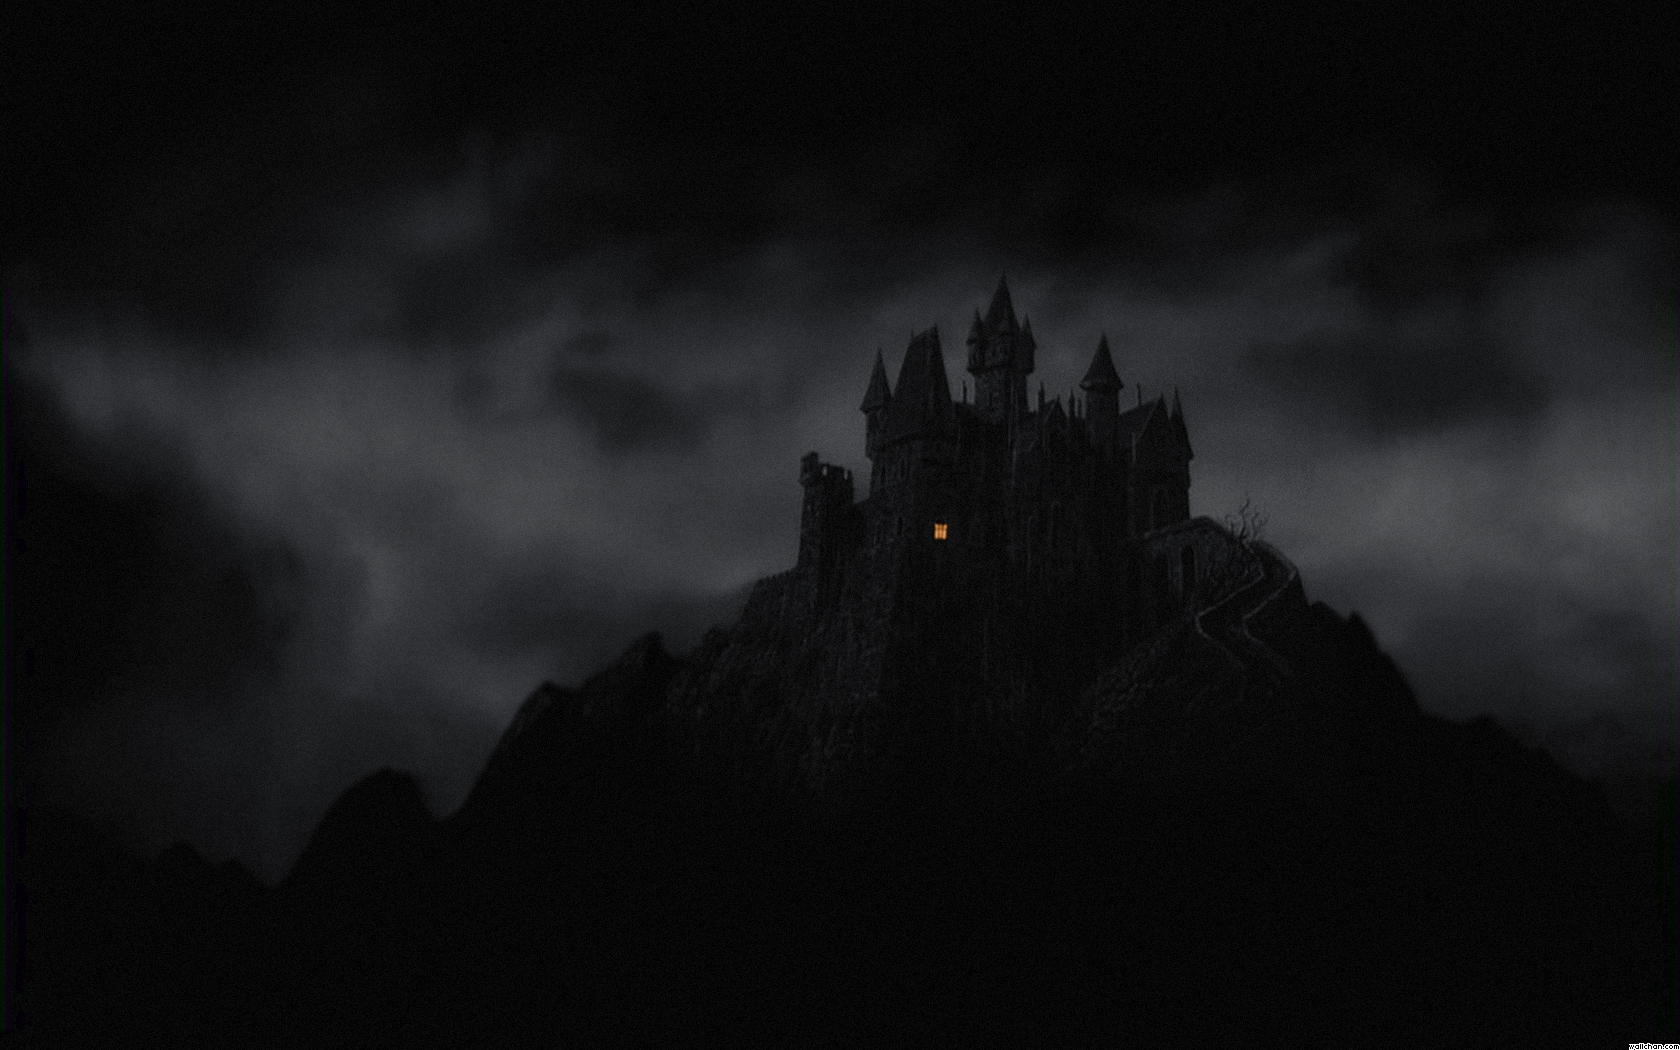 1305875279-fantasy-mountains-castle-dark-night-window-gothic-wallpaper.jpg